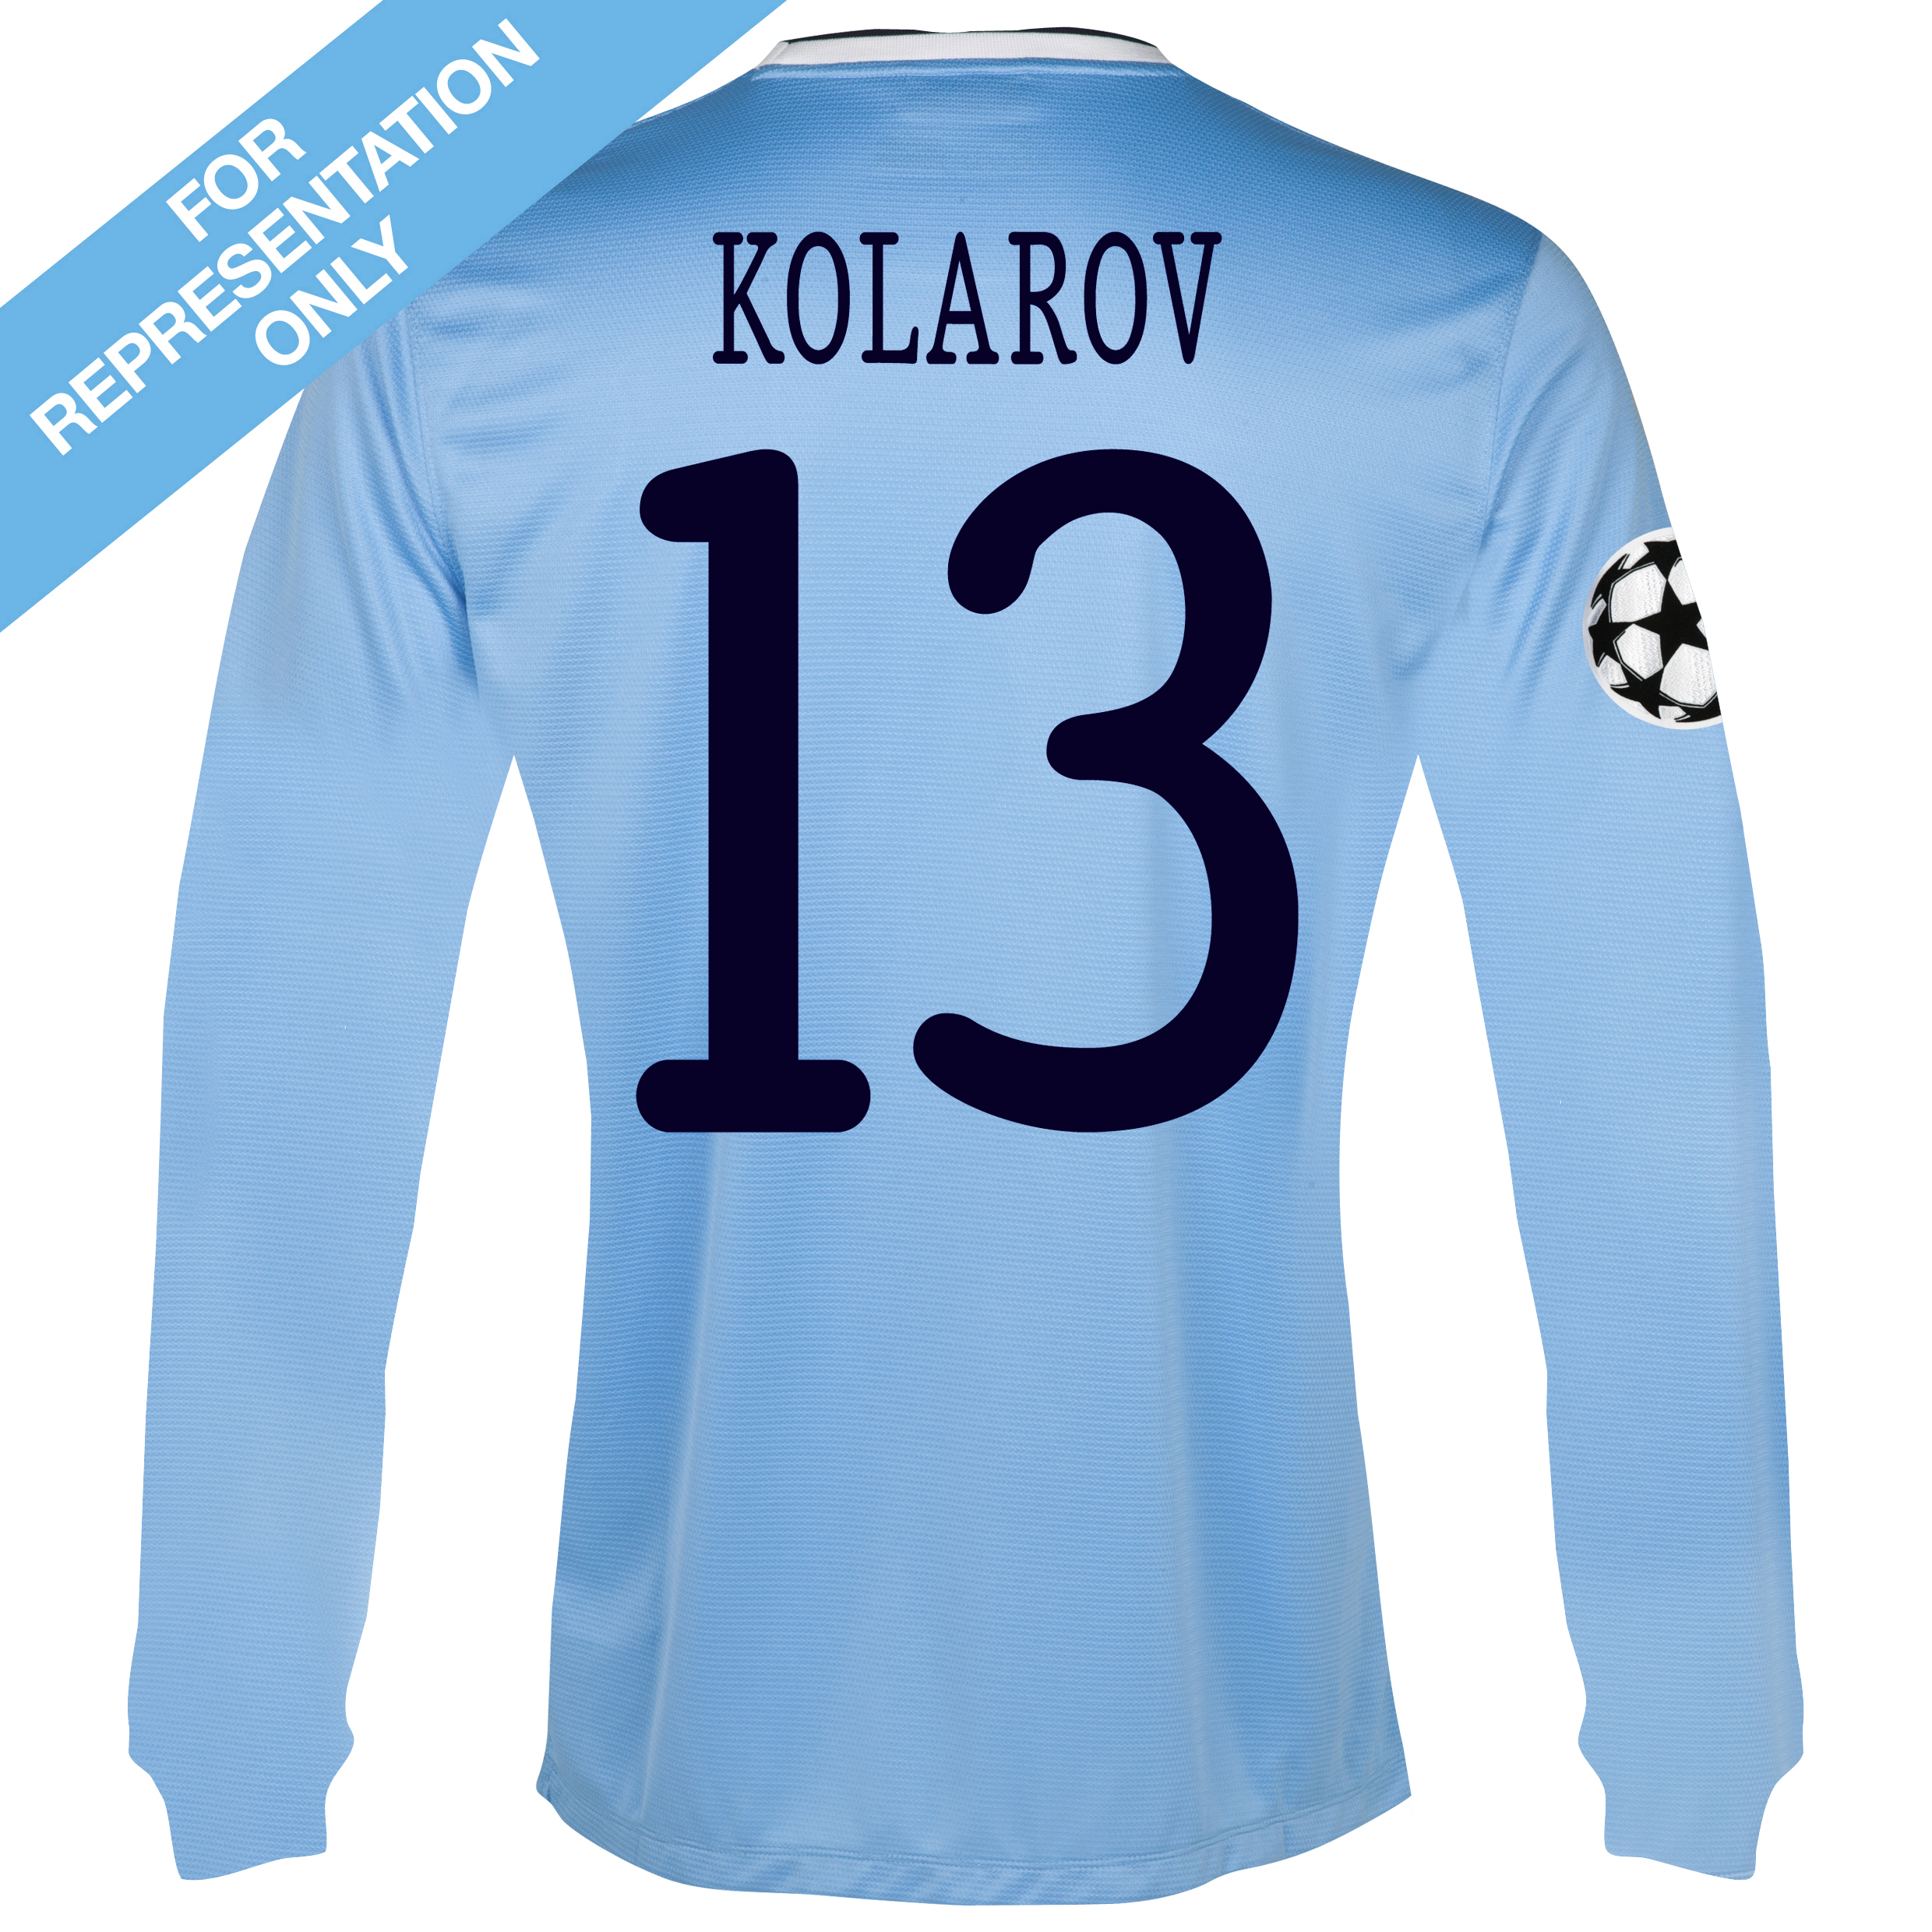 Manchester City UEFA Champions League Home Shirt 2013/14 - Long Sleeved with Kolarov 13 printing